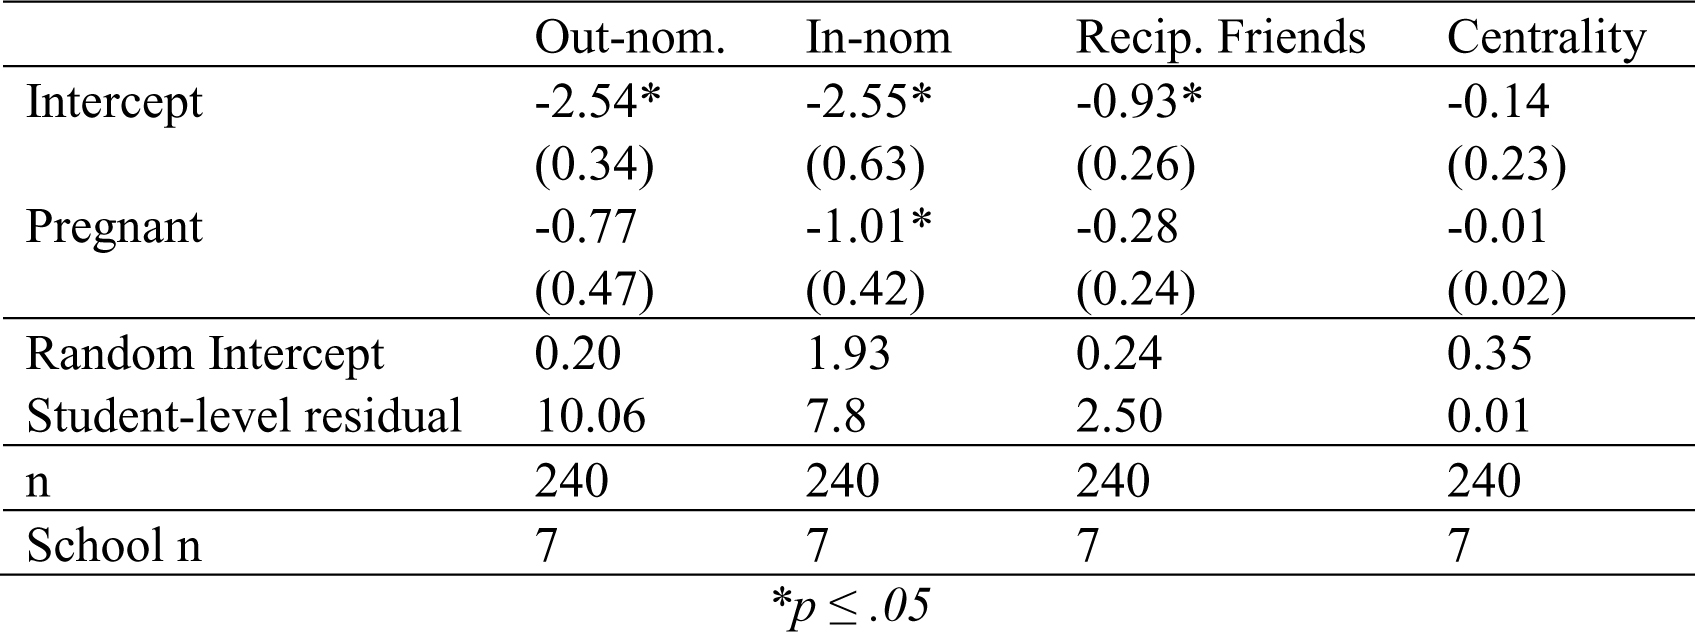 Dynamics of Social Networks Following Adolescent Pregnancy